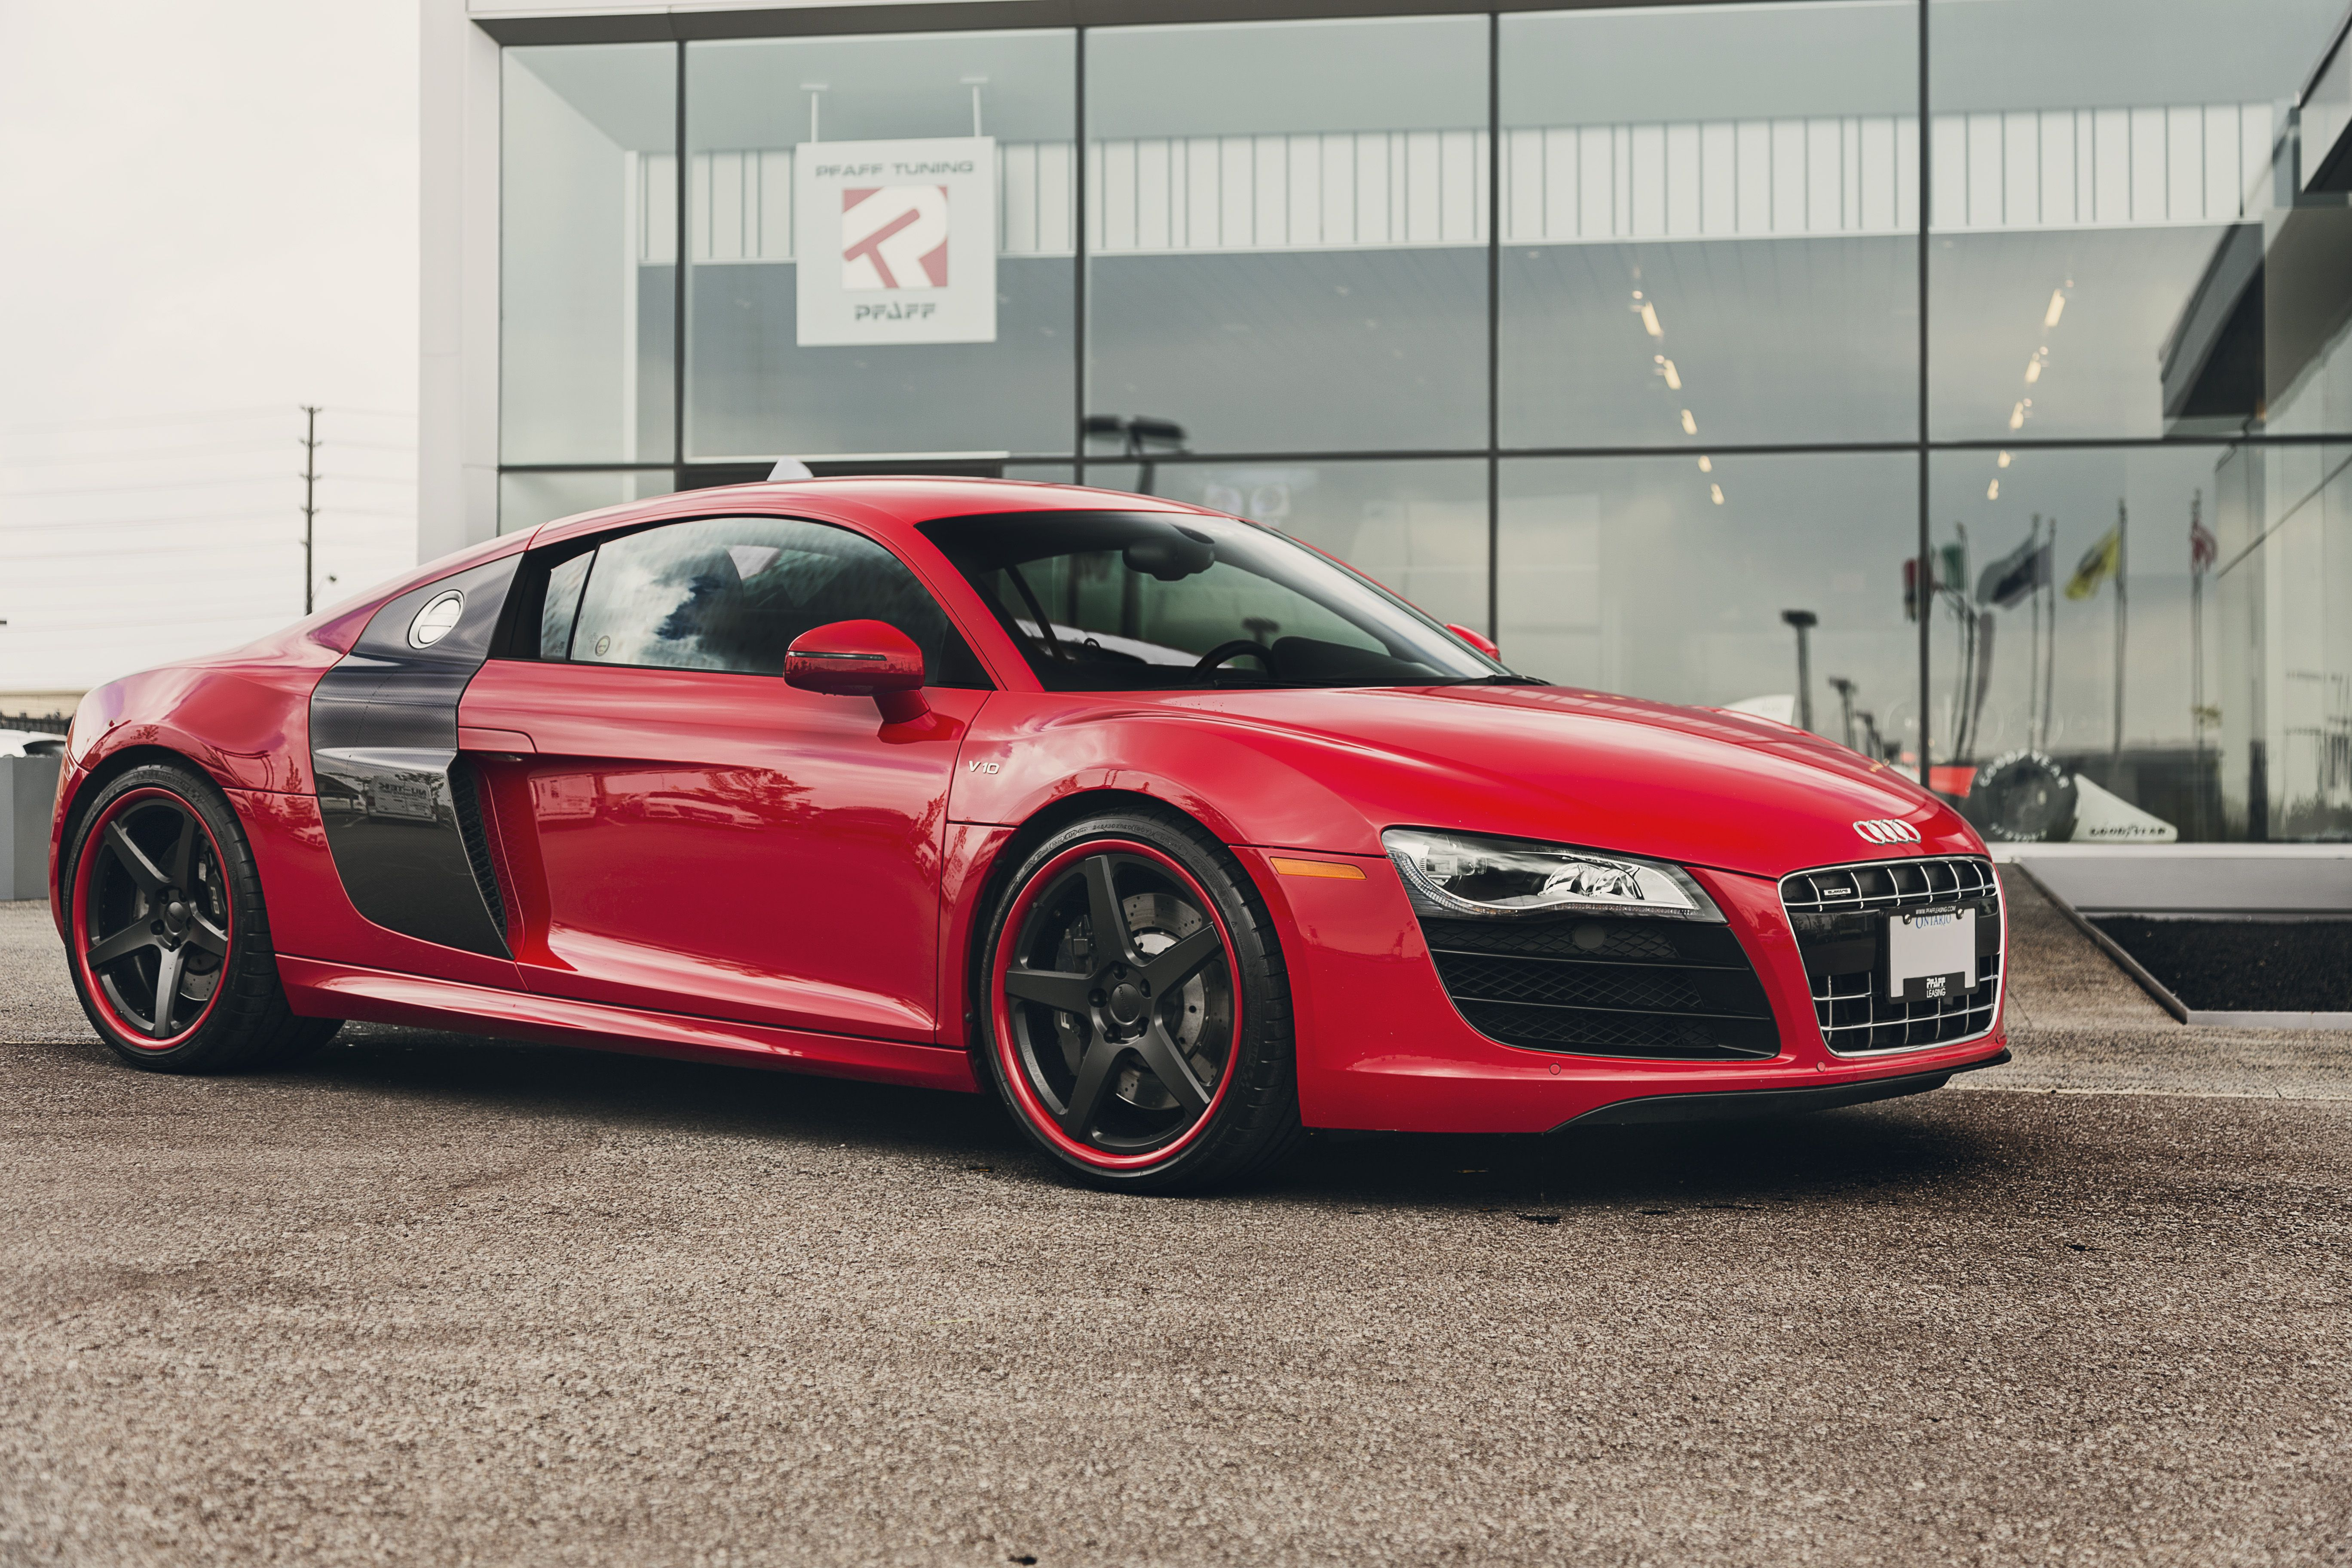 ontario 39 s pfaff tuning equipped this audi r8 v10 with 20 inch forgeline cf3c wheels finished. Black Bedroom Furniture Sets. Home Design Ideas